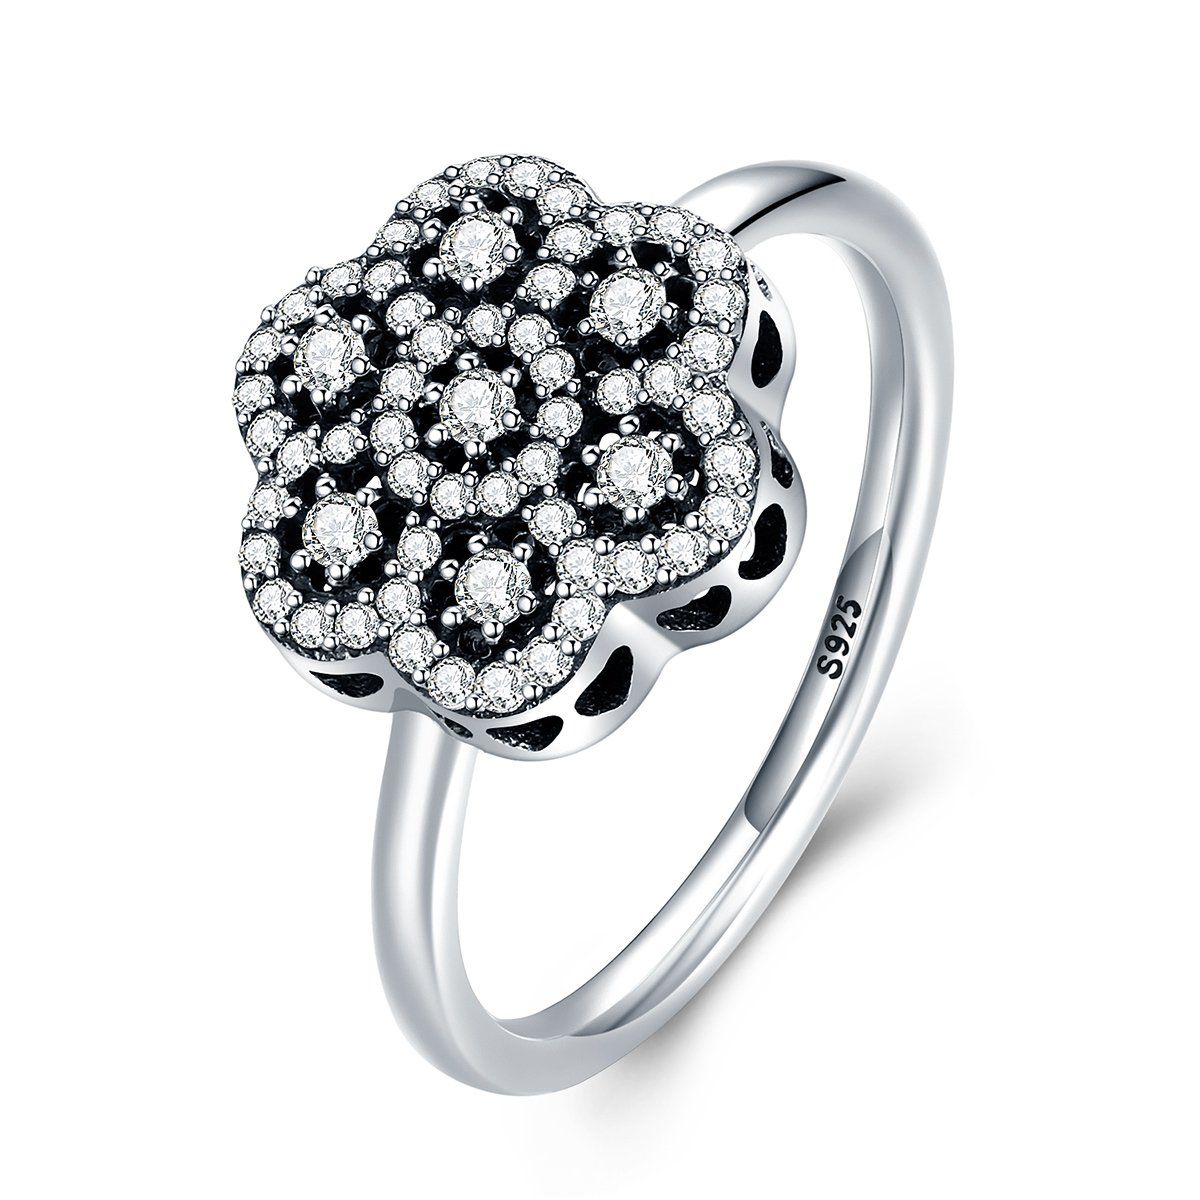 Deals Sparkling Floral Daisy Lace Ring Cheap Online With Regard To Best And Newest Sparkling Daisy Flower Rings (View 11 of 25)